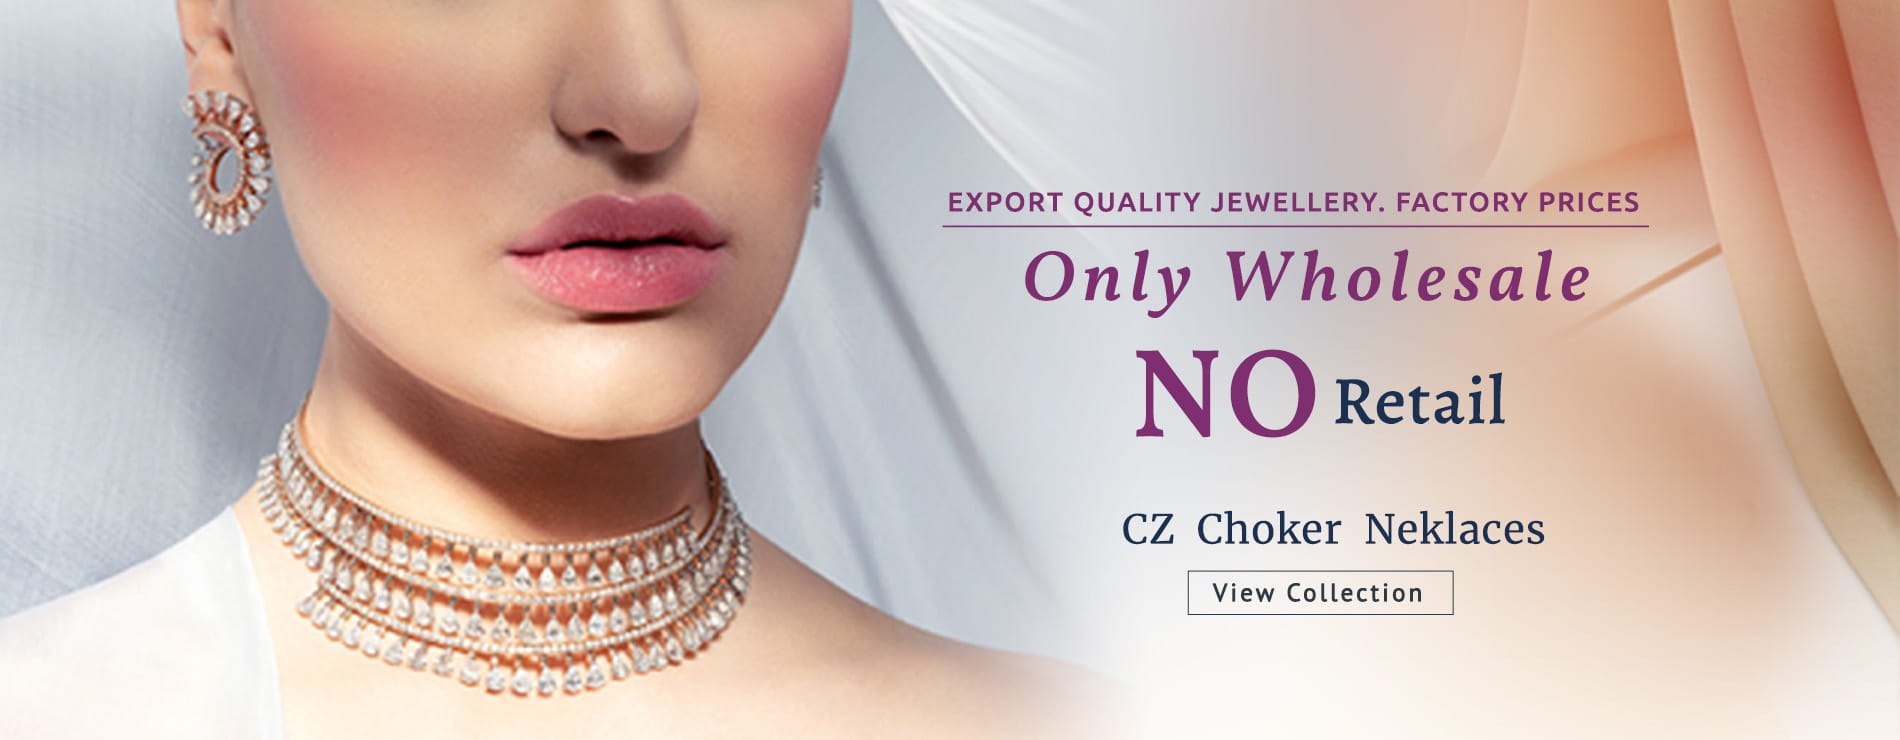 Export Quality Jewellery Available at Factory Prices